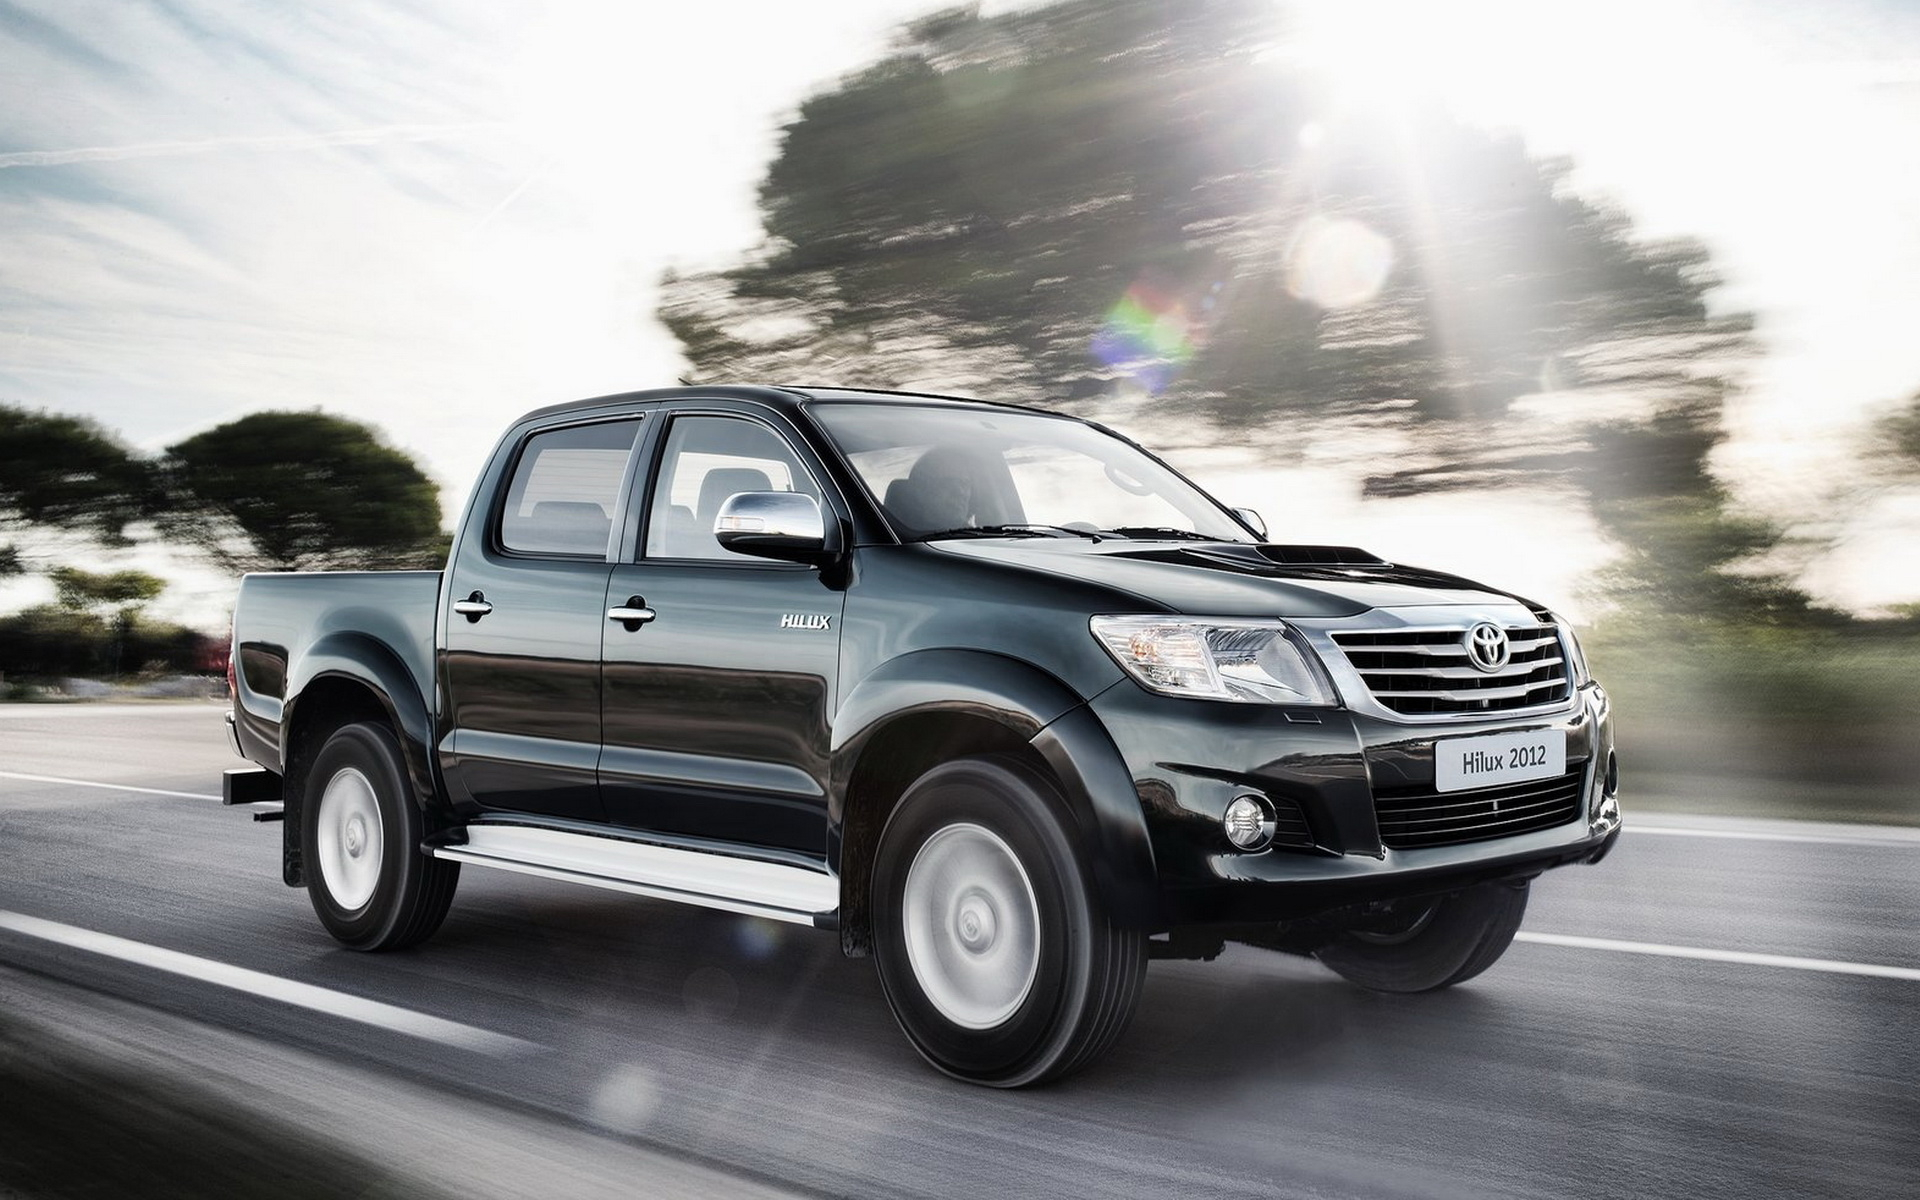 Pack75 Toyota Hilux Wallpapers 1920x1200 px WallpapersExpertcom 1920x1200